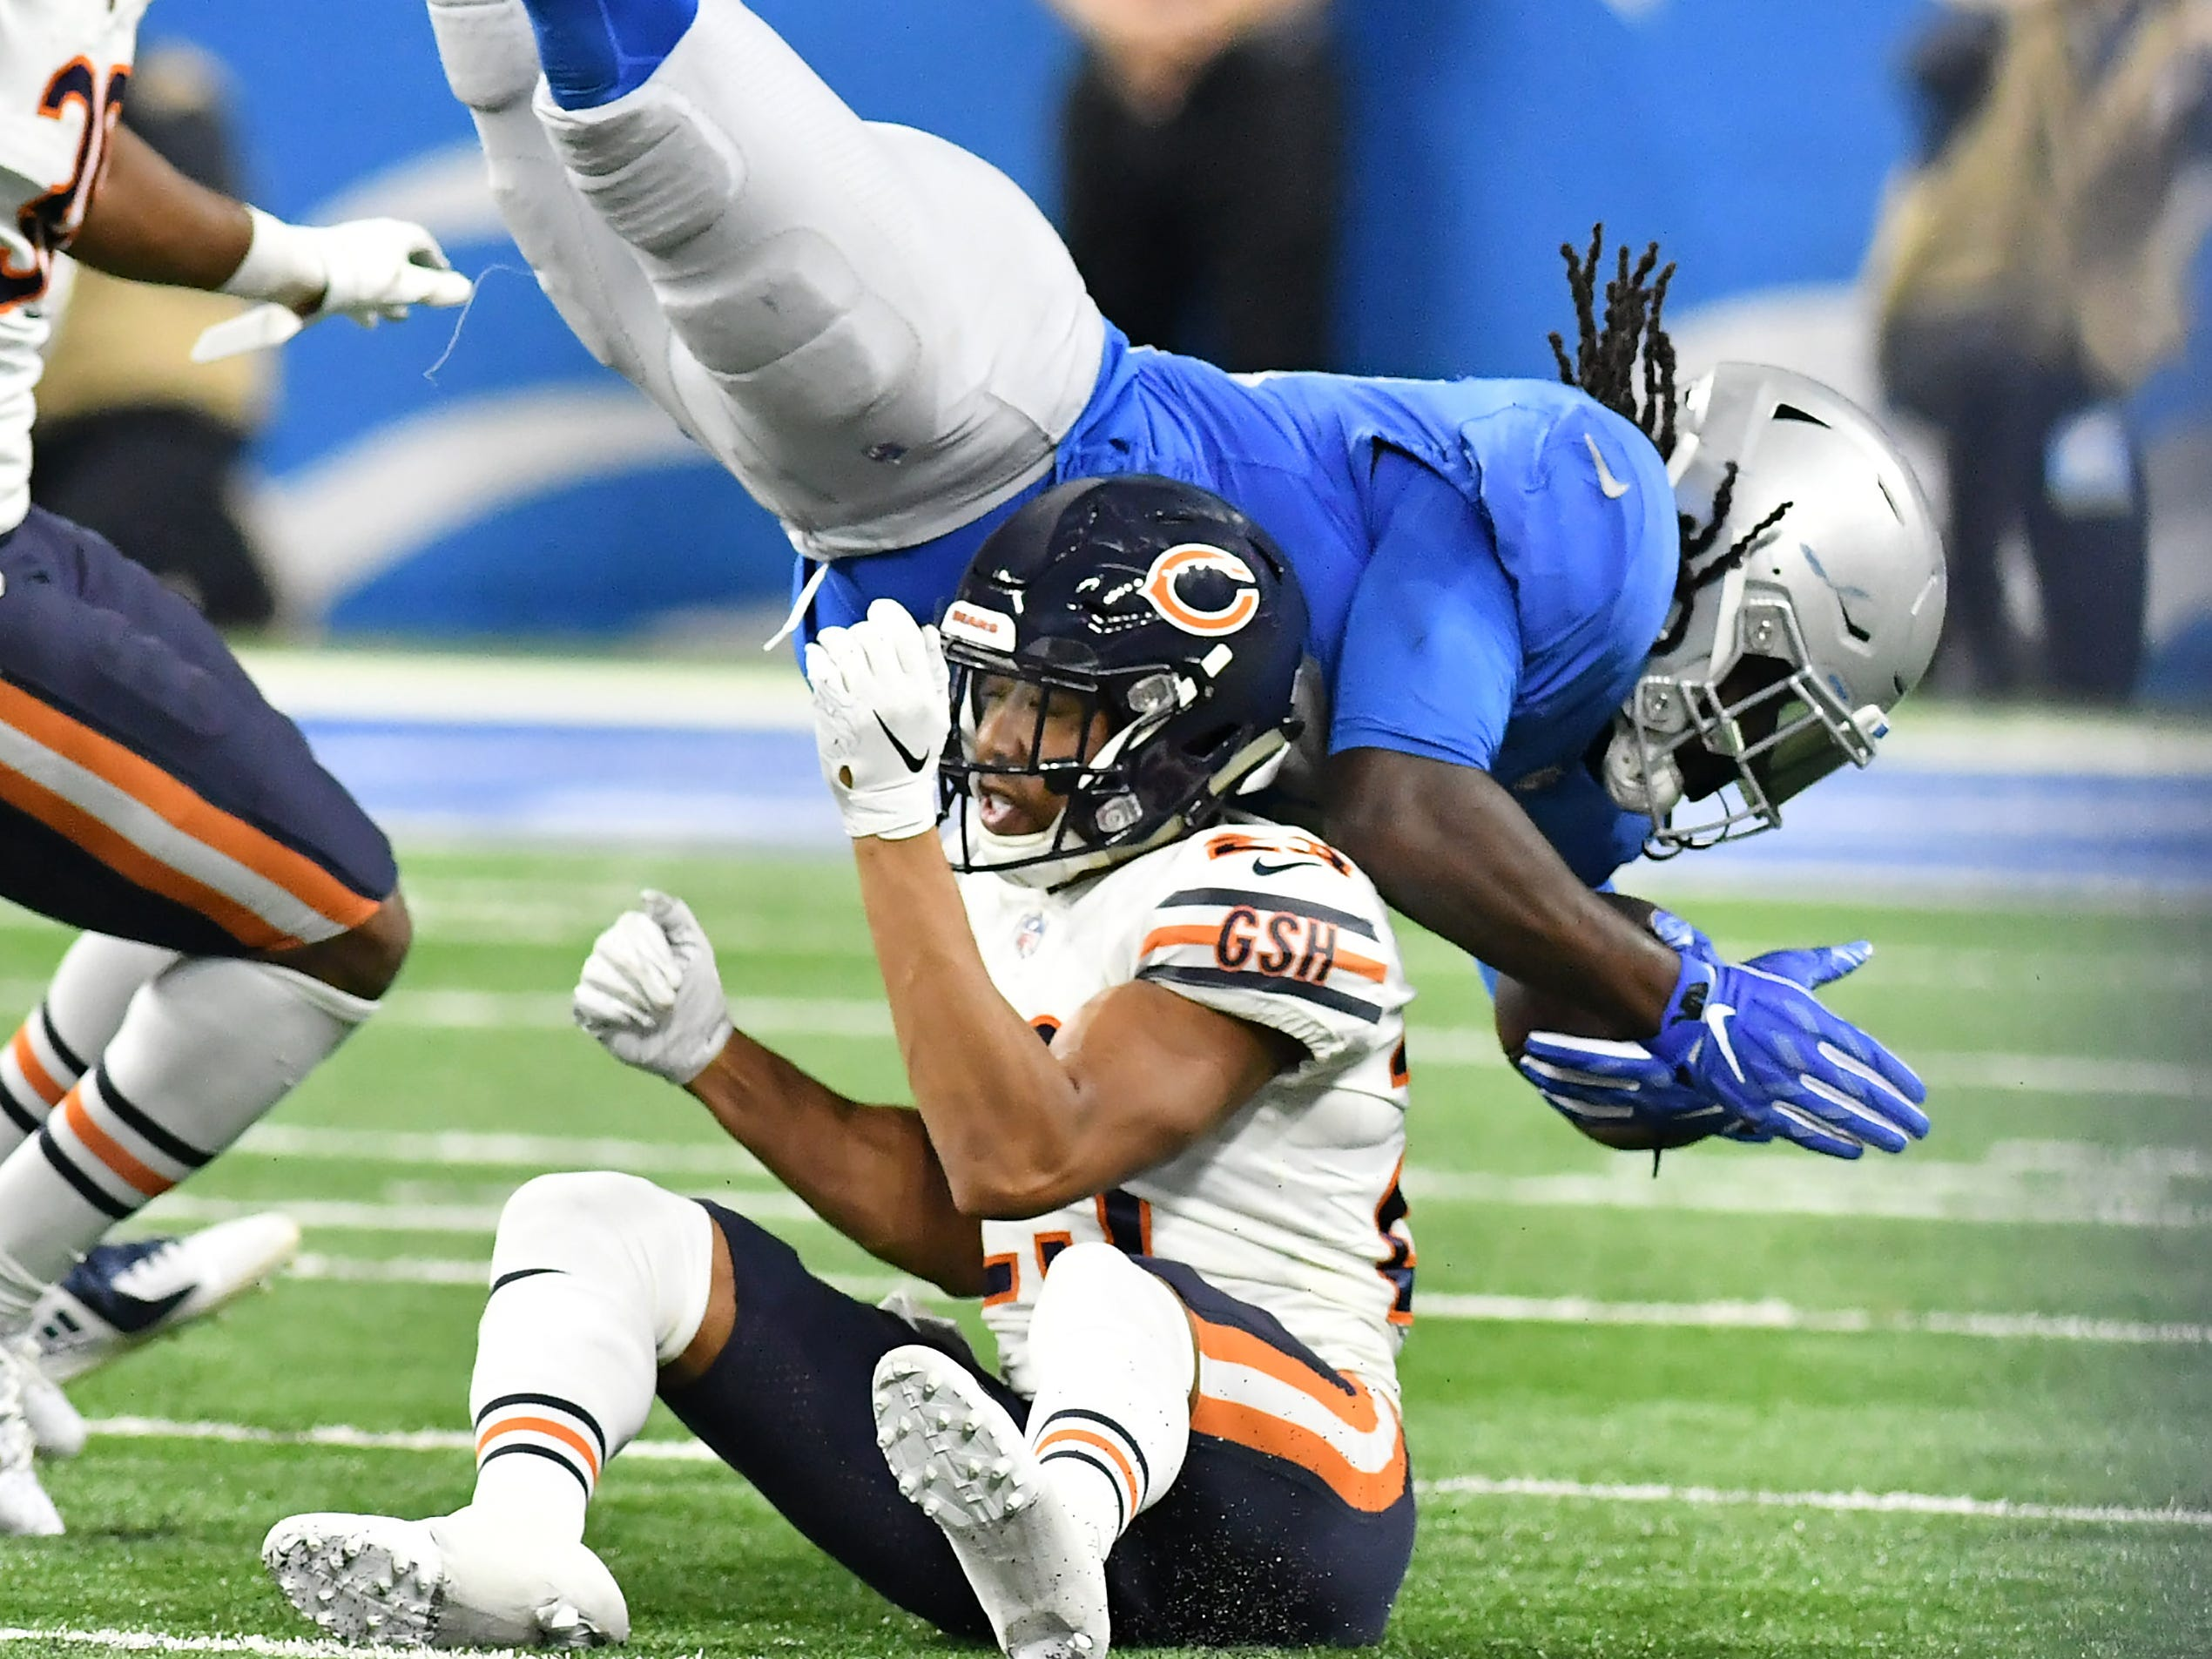 Bears' Kyle Fuller (23) upends Lions running back LaGarrette Blount on a run In the fourth quarter.